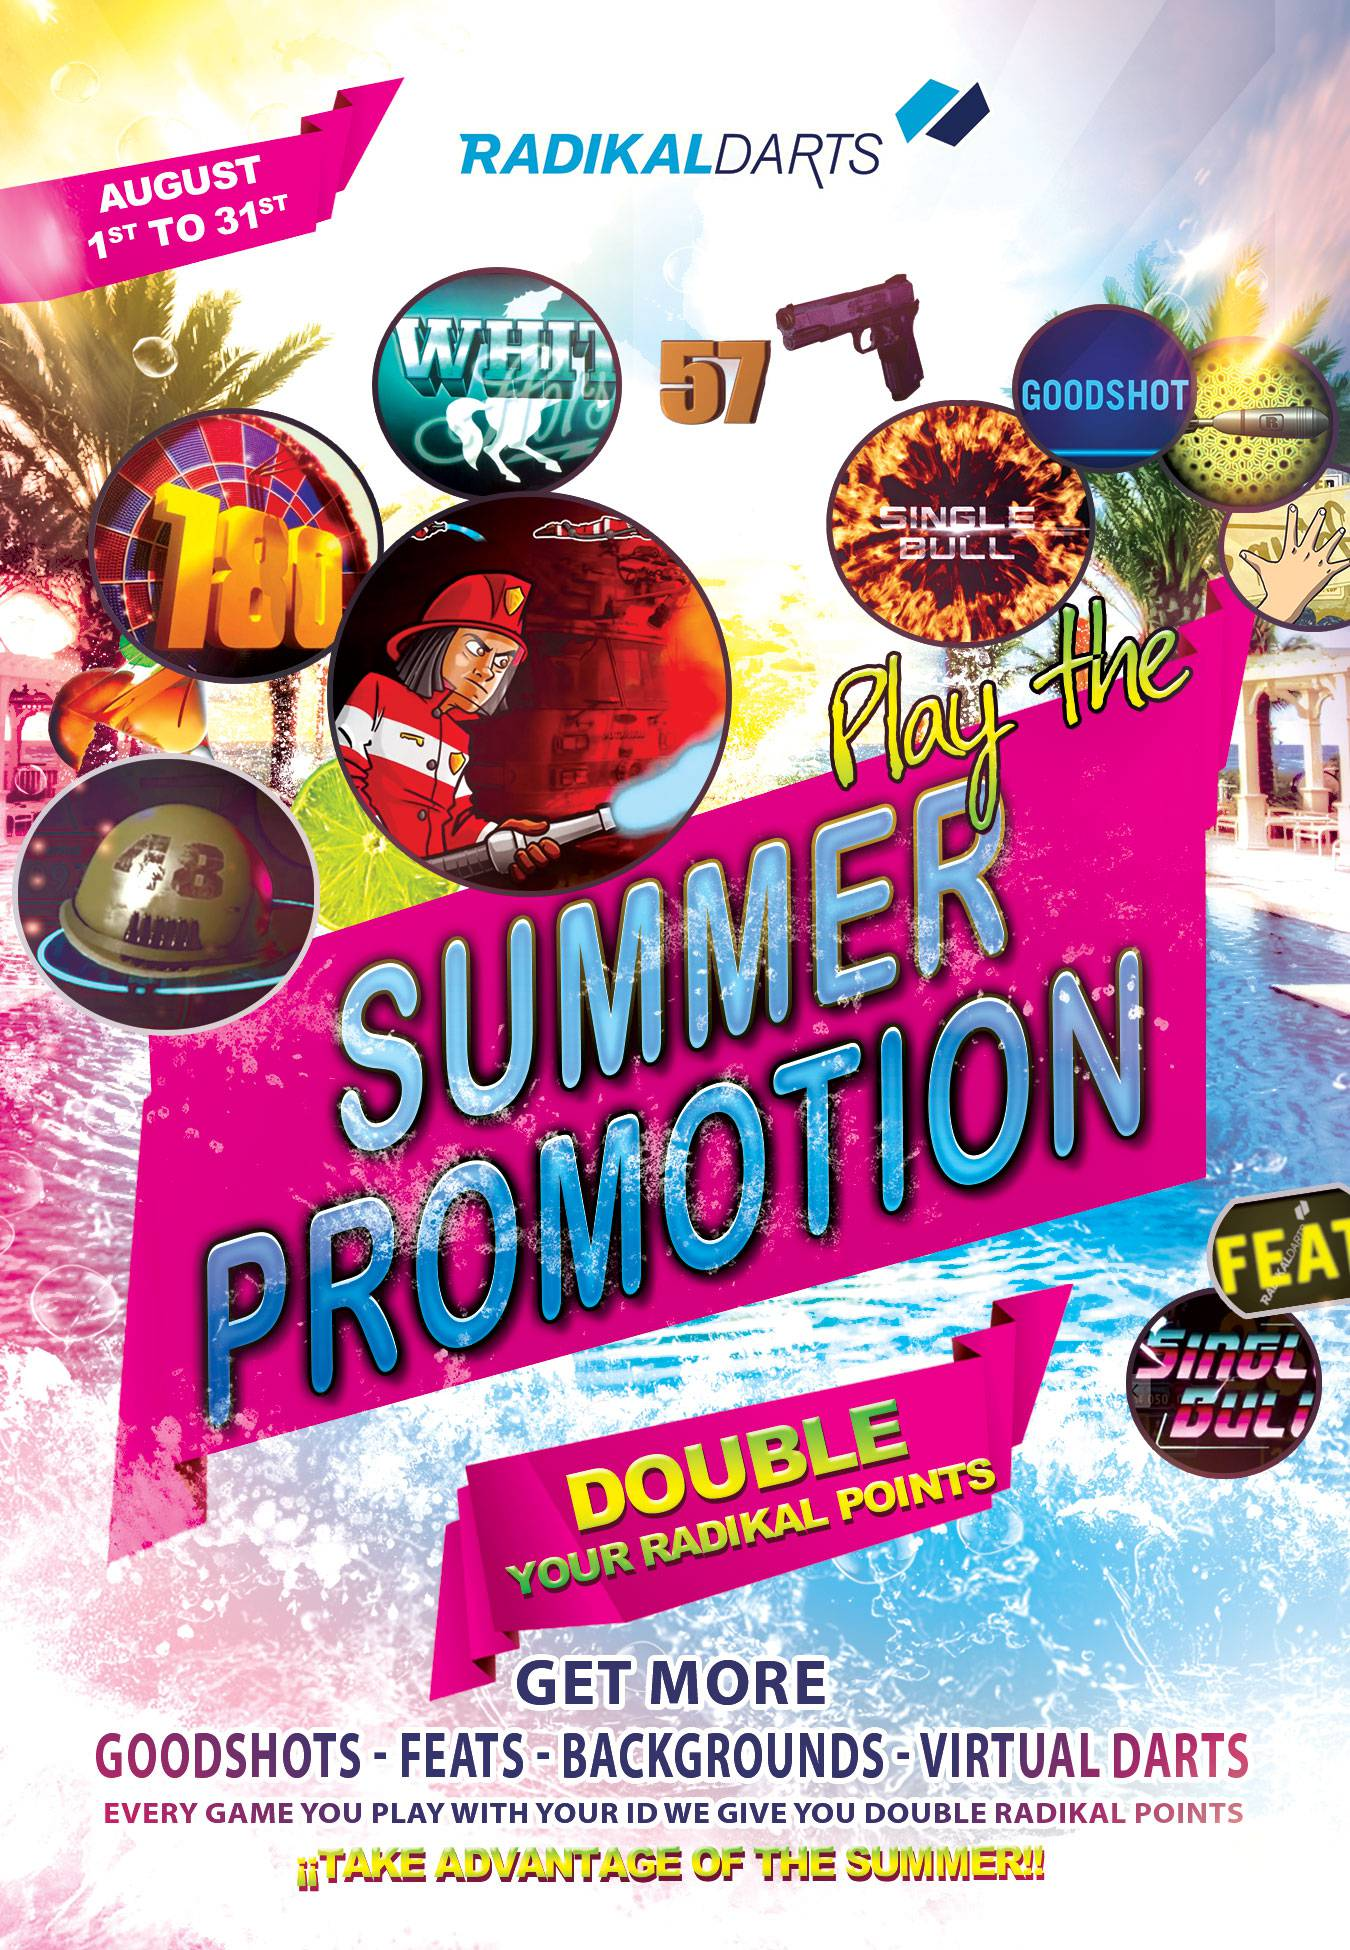 Radikal Darts Summer Promotion. Double your Radikal Darts Points